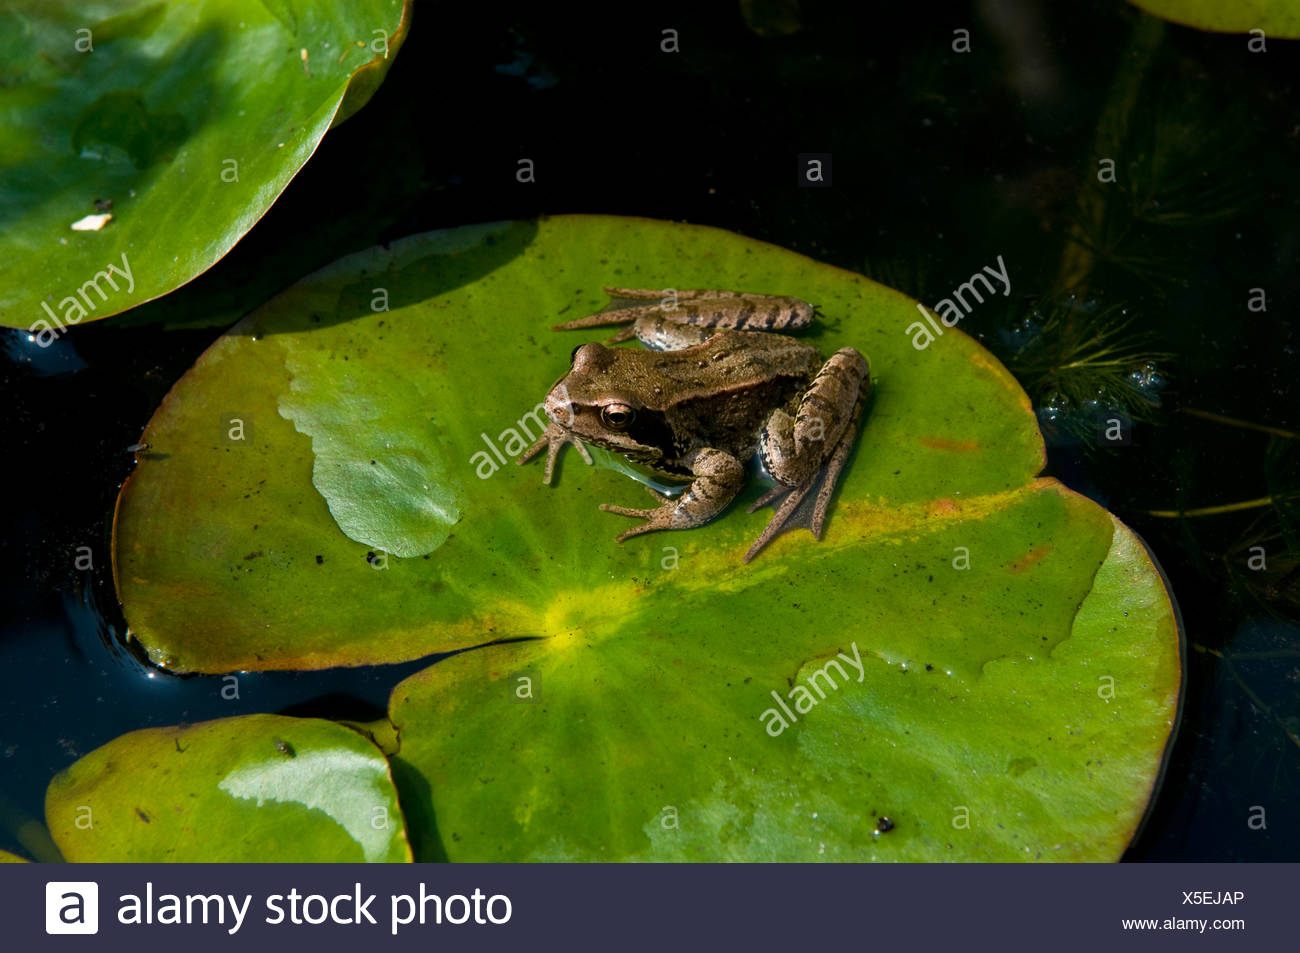 Frog On Lily Pad In Thetford Stock Photo Alamy